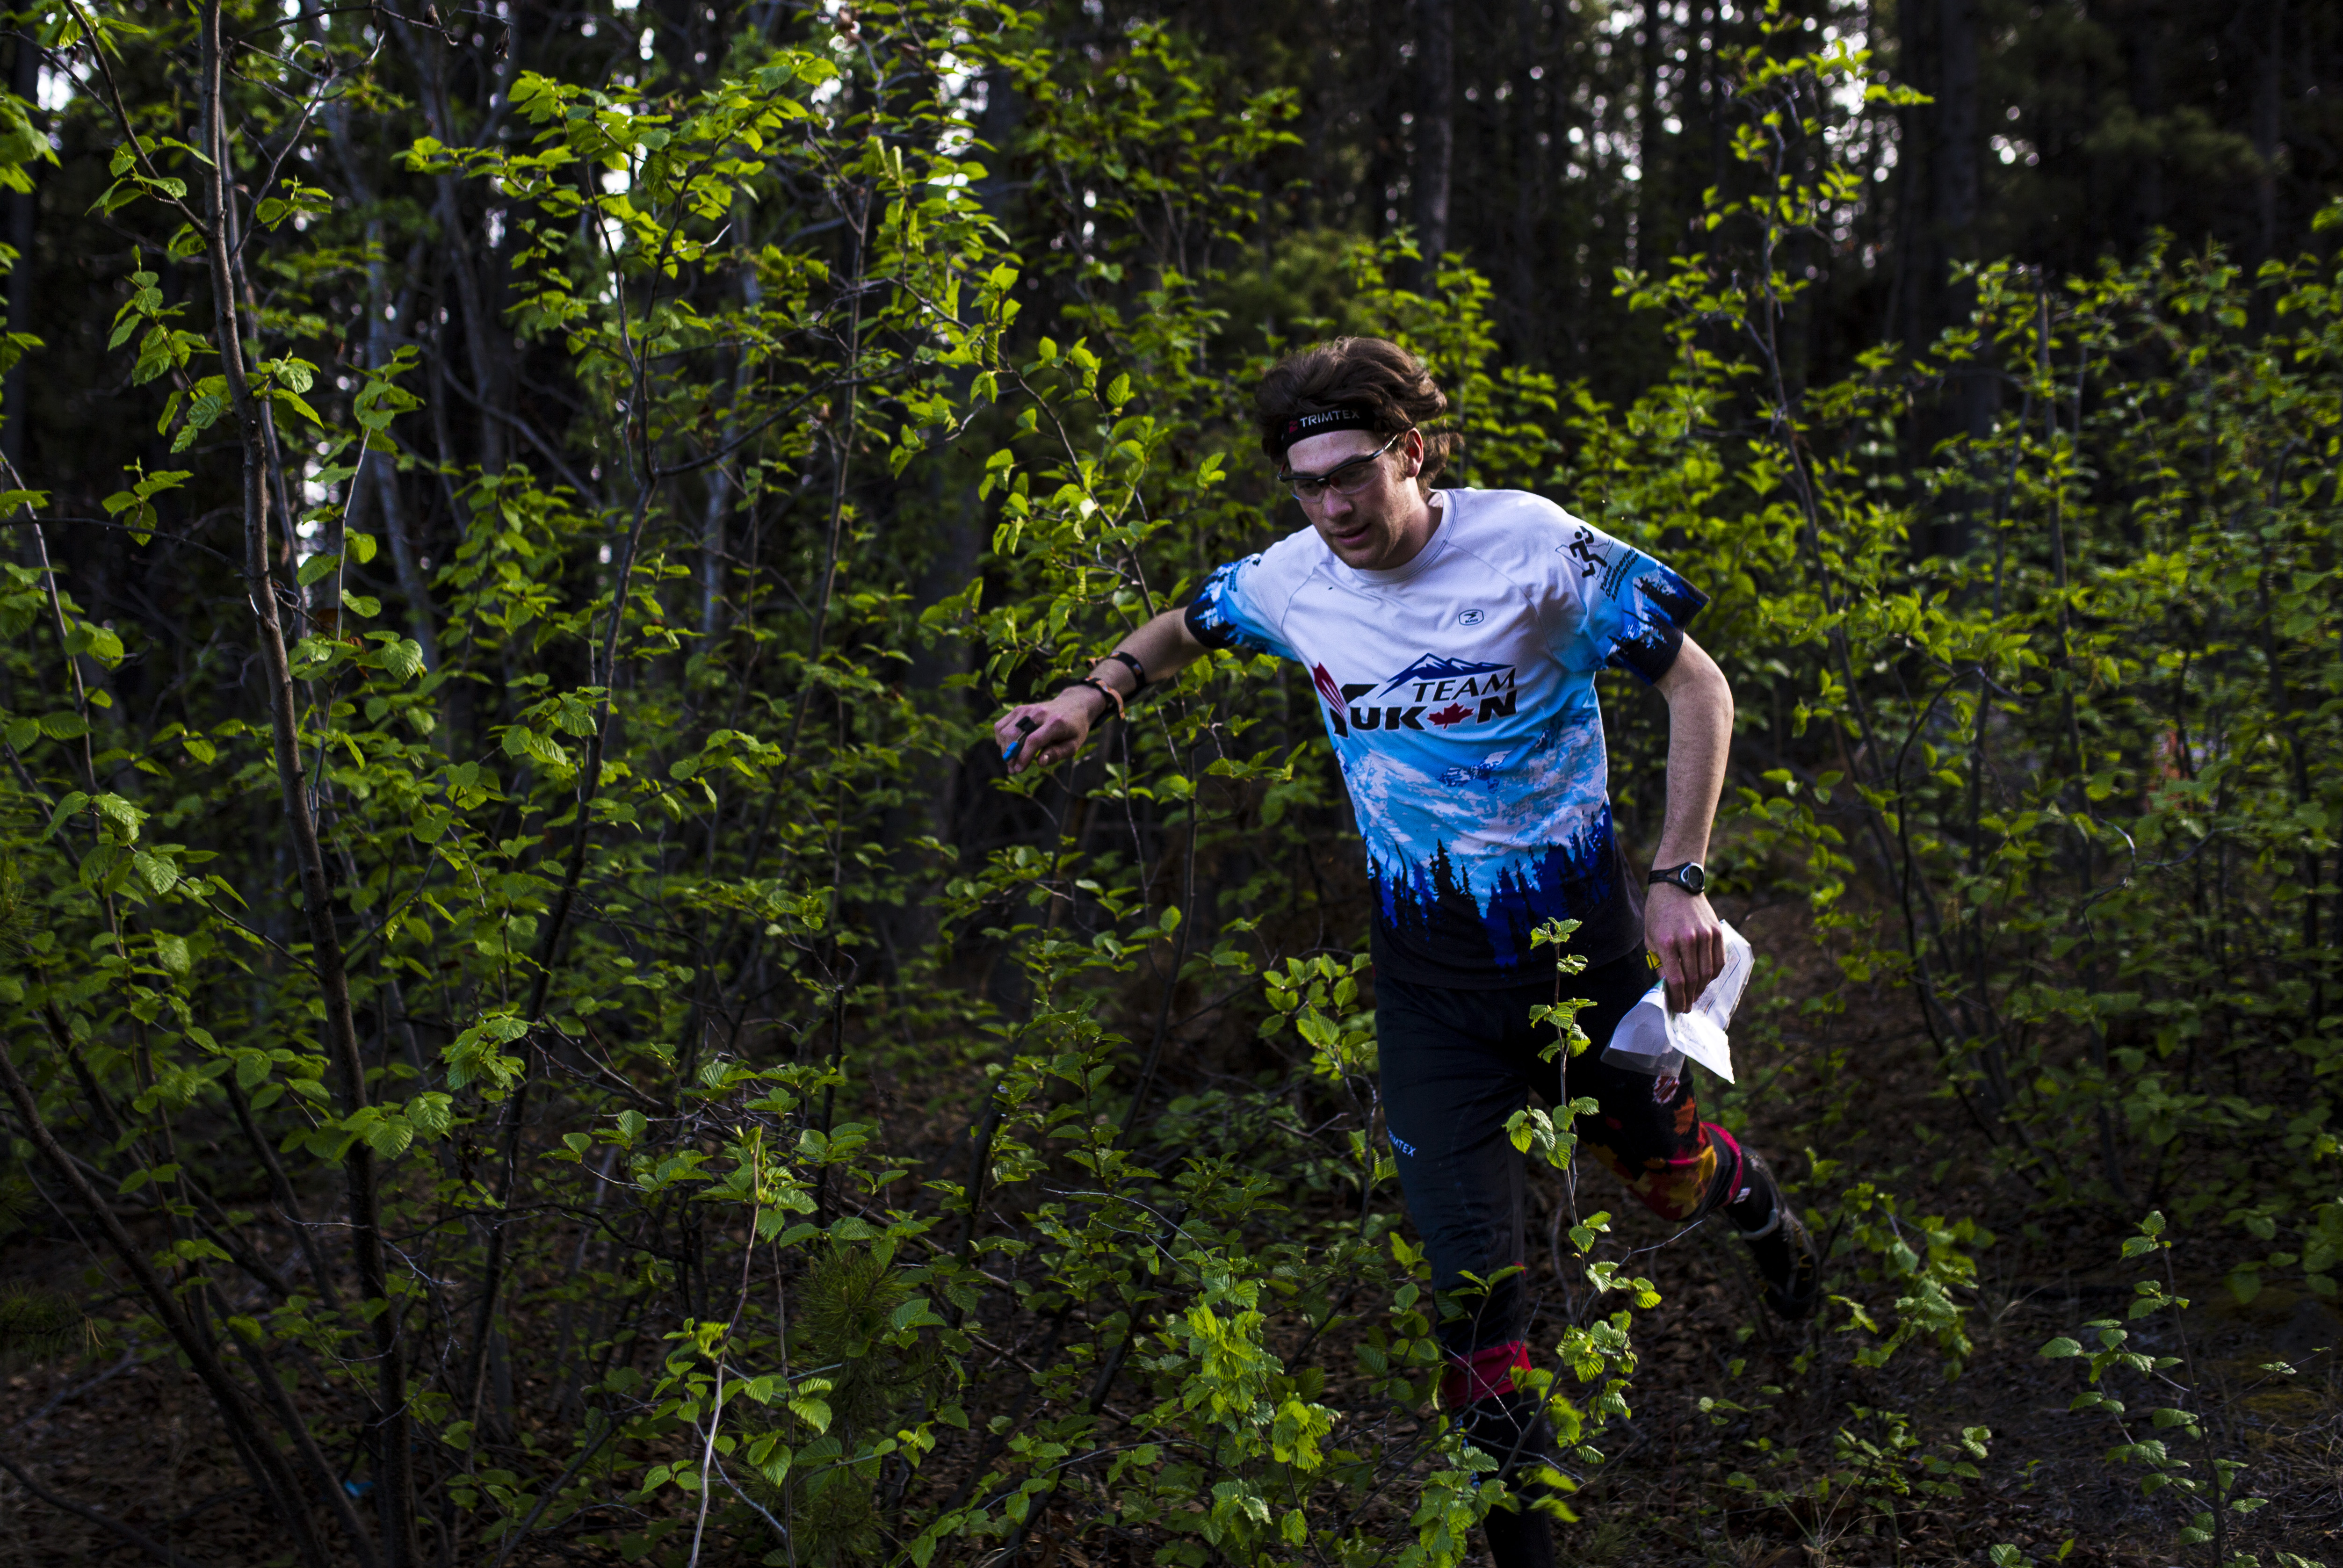 Caelan McLean makes his way down the hill to the final control before the finish during the Yukon Orienteering Middle Distance Championships in the Lo-Bird subdivision on Wednesday, June 7, 2017.